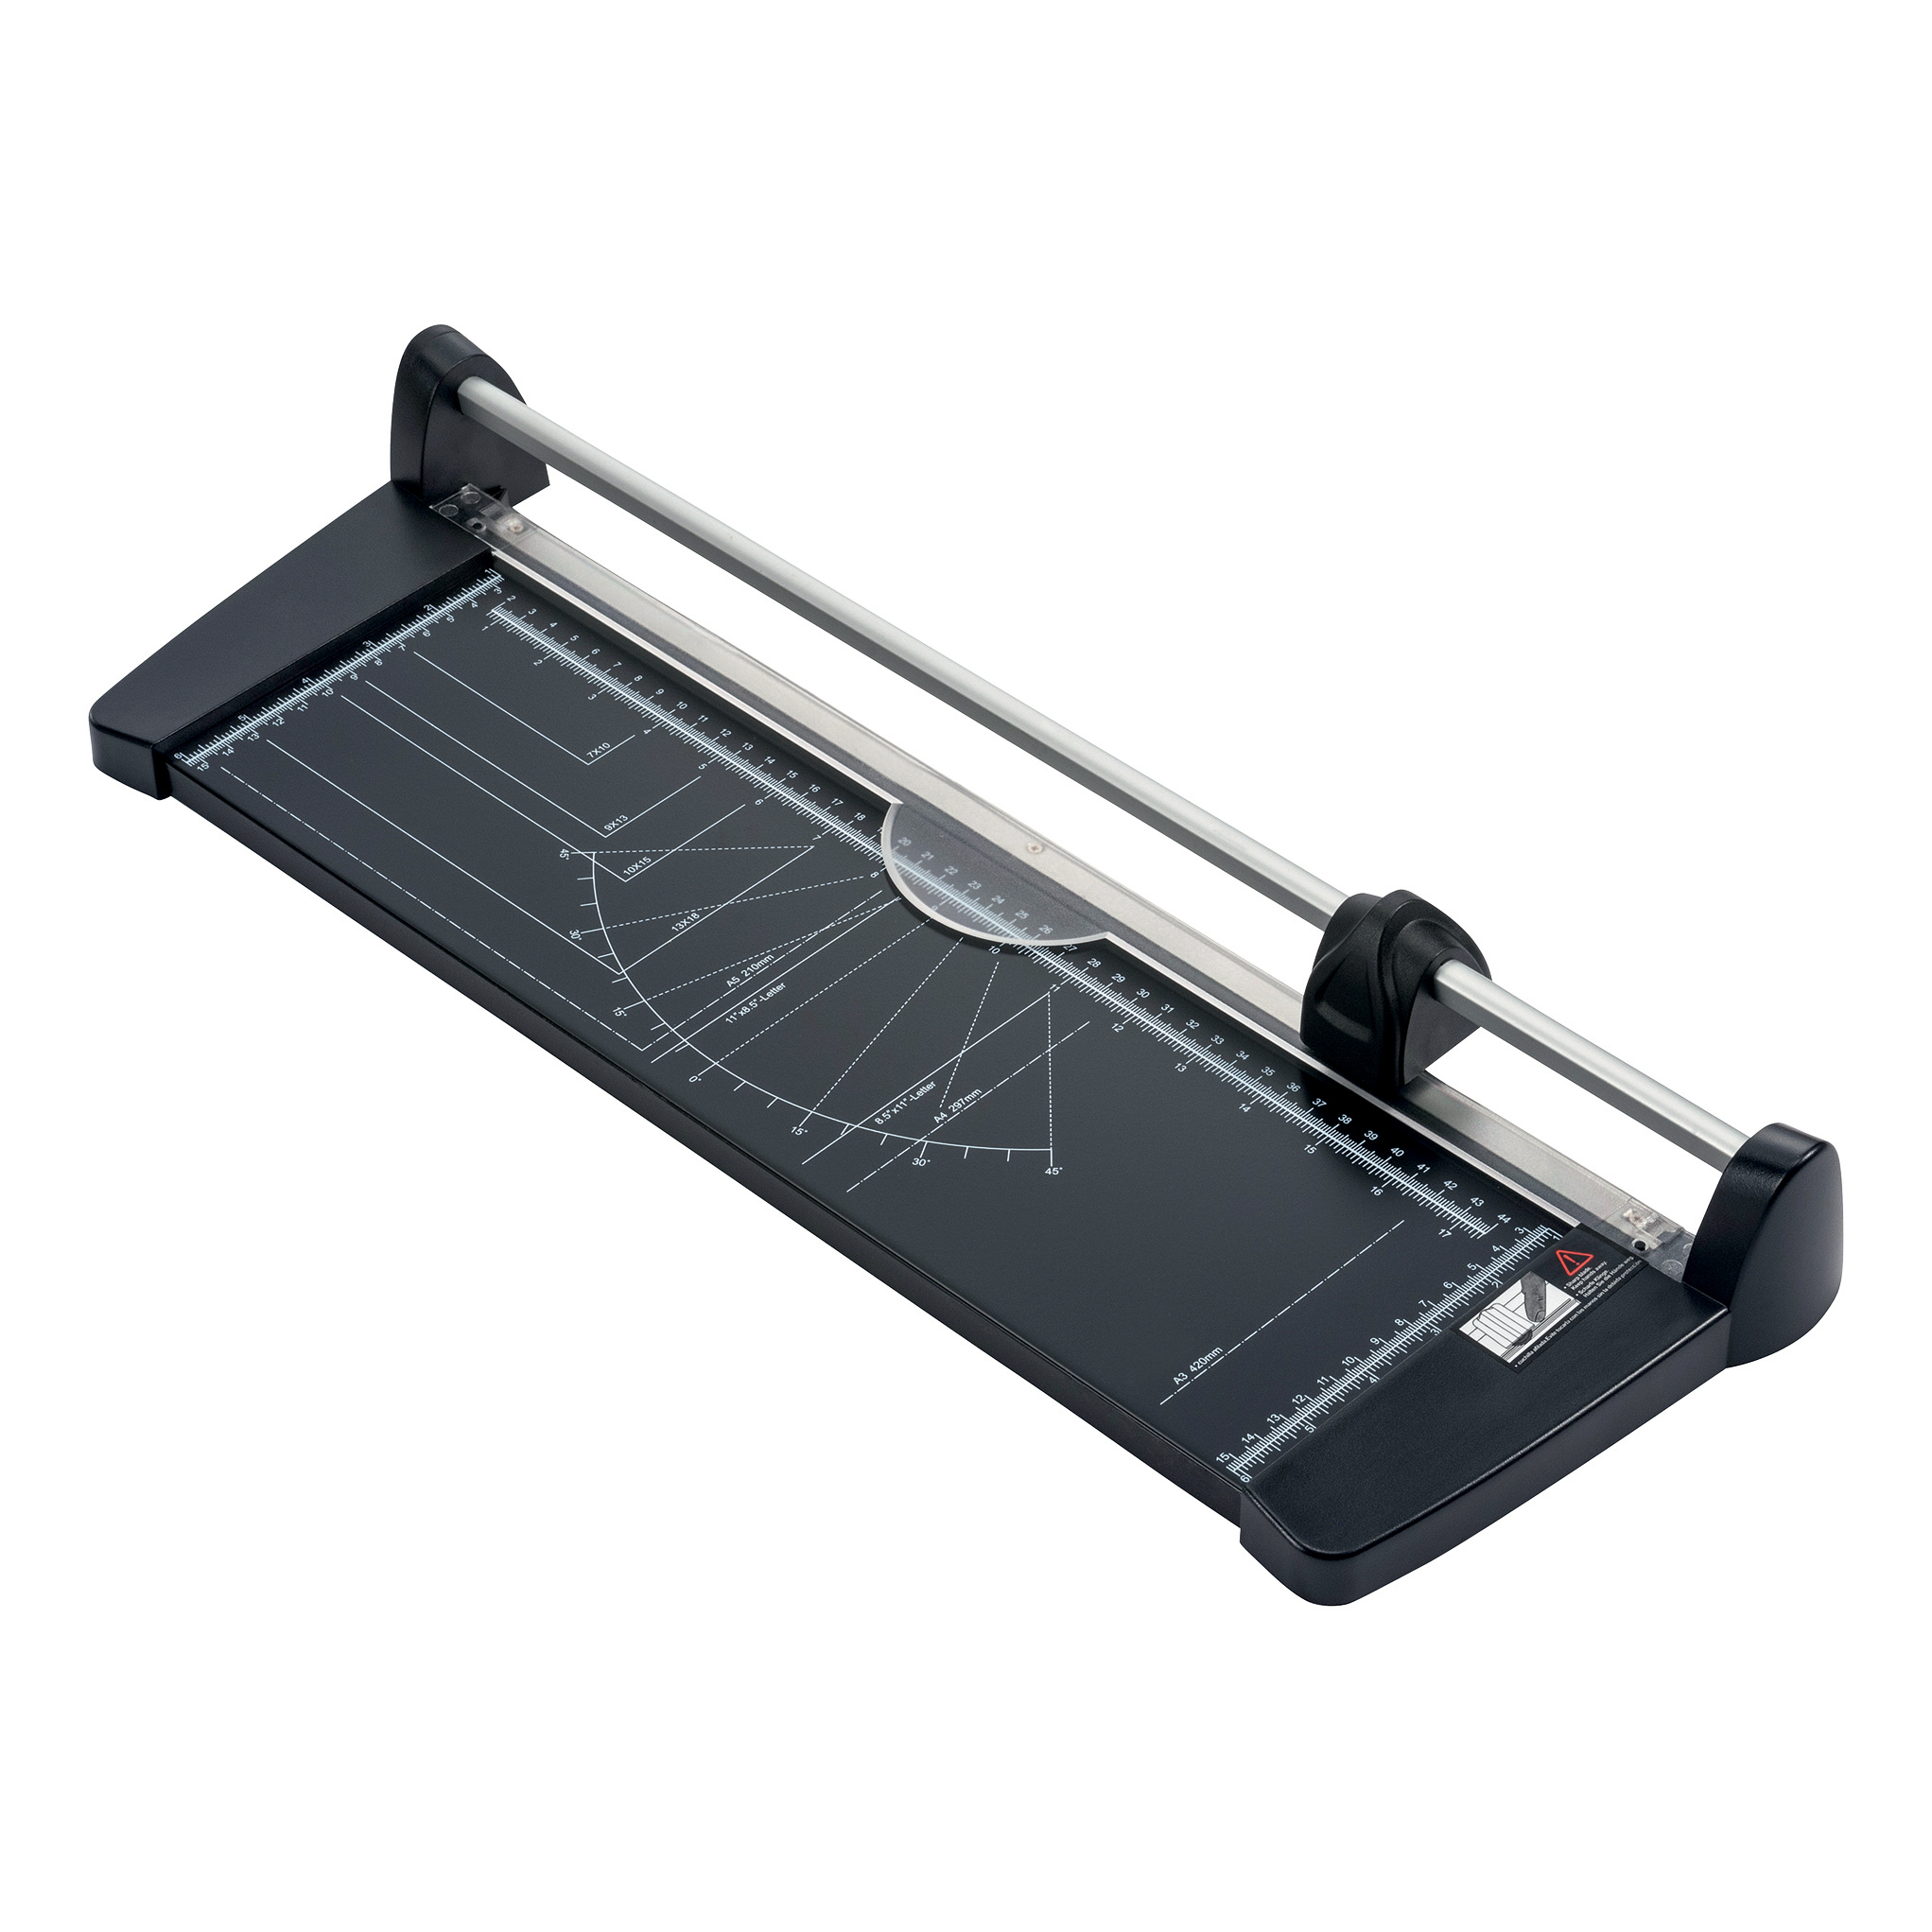 5 Star Office Personal Trimmer 10 Sheet Capacity A3 Cutting Length 460mm Cutting Table Size 460x157mm